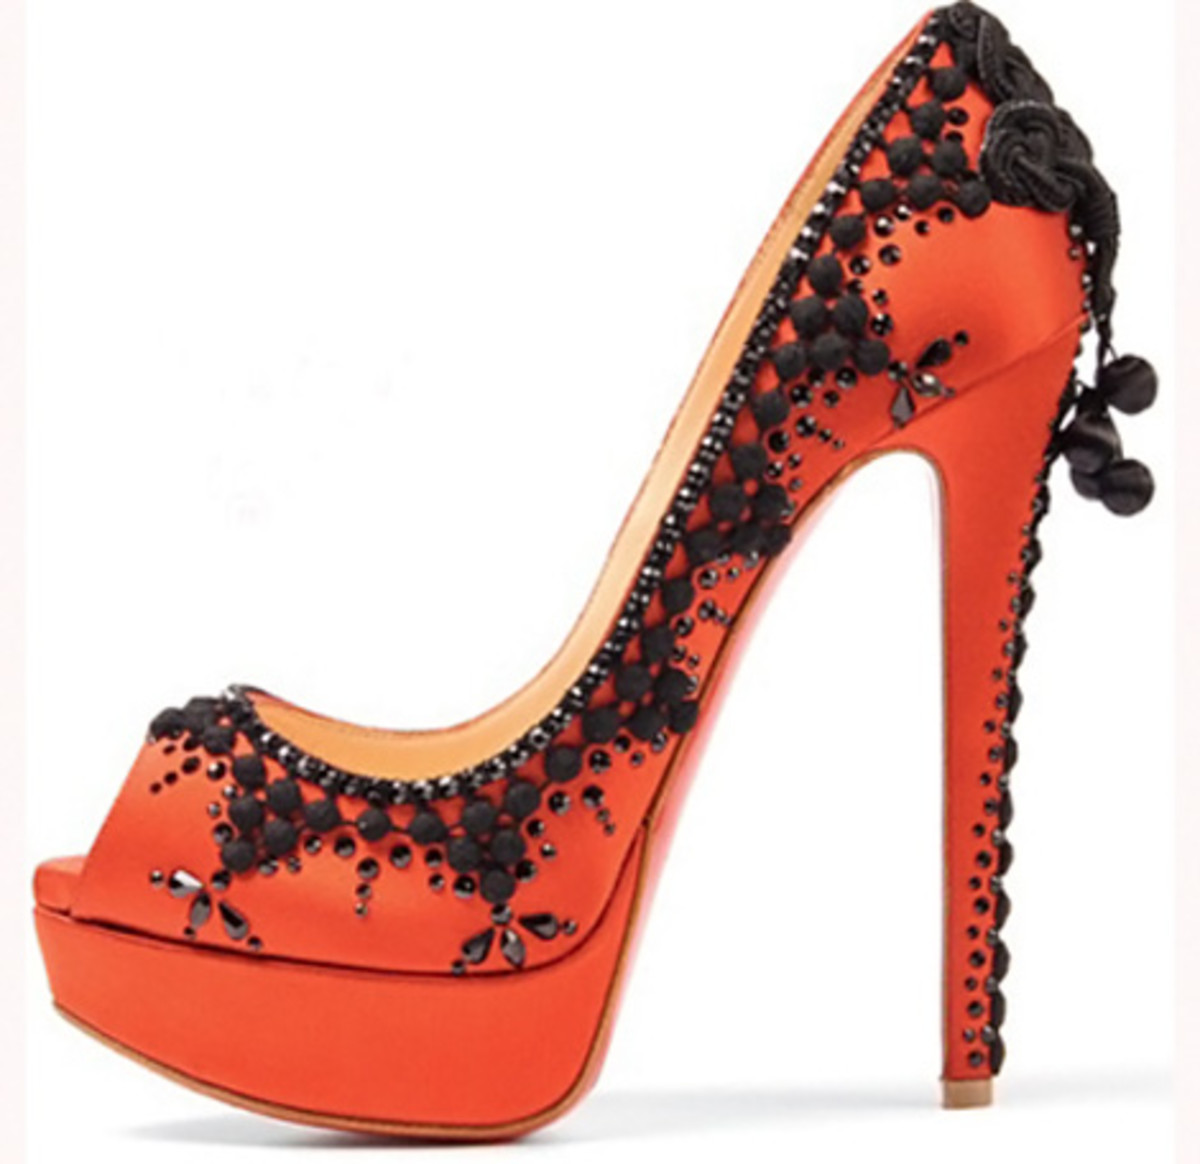 Christian Louboutin 2012 collection